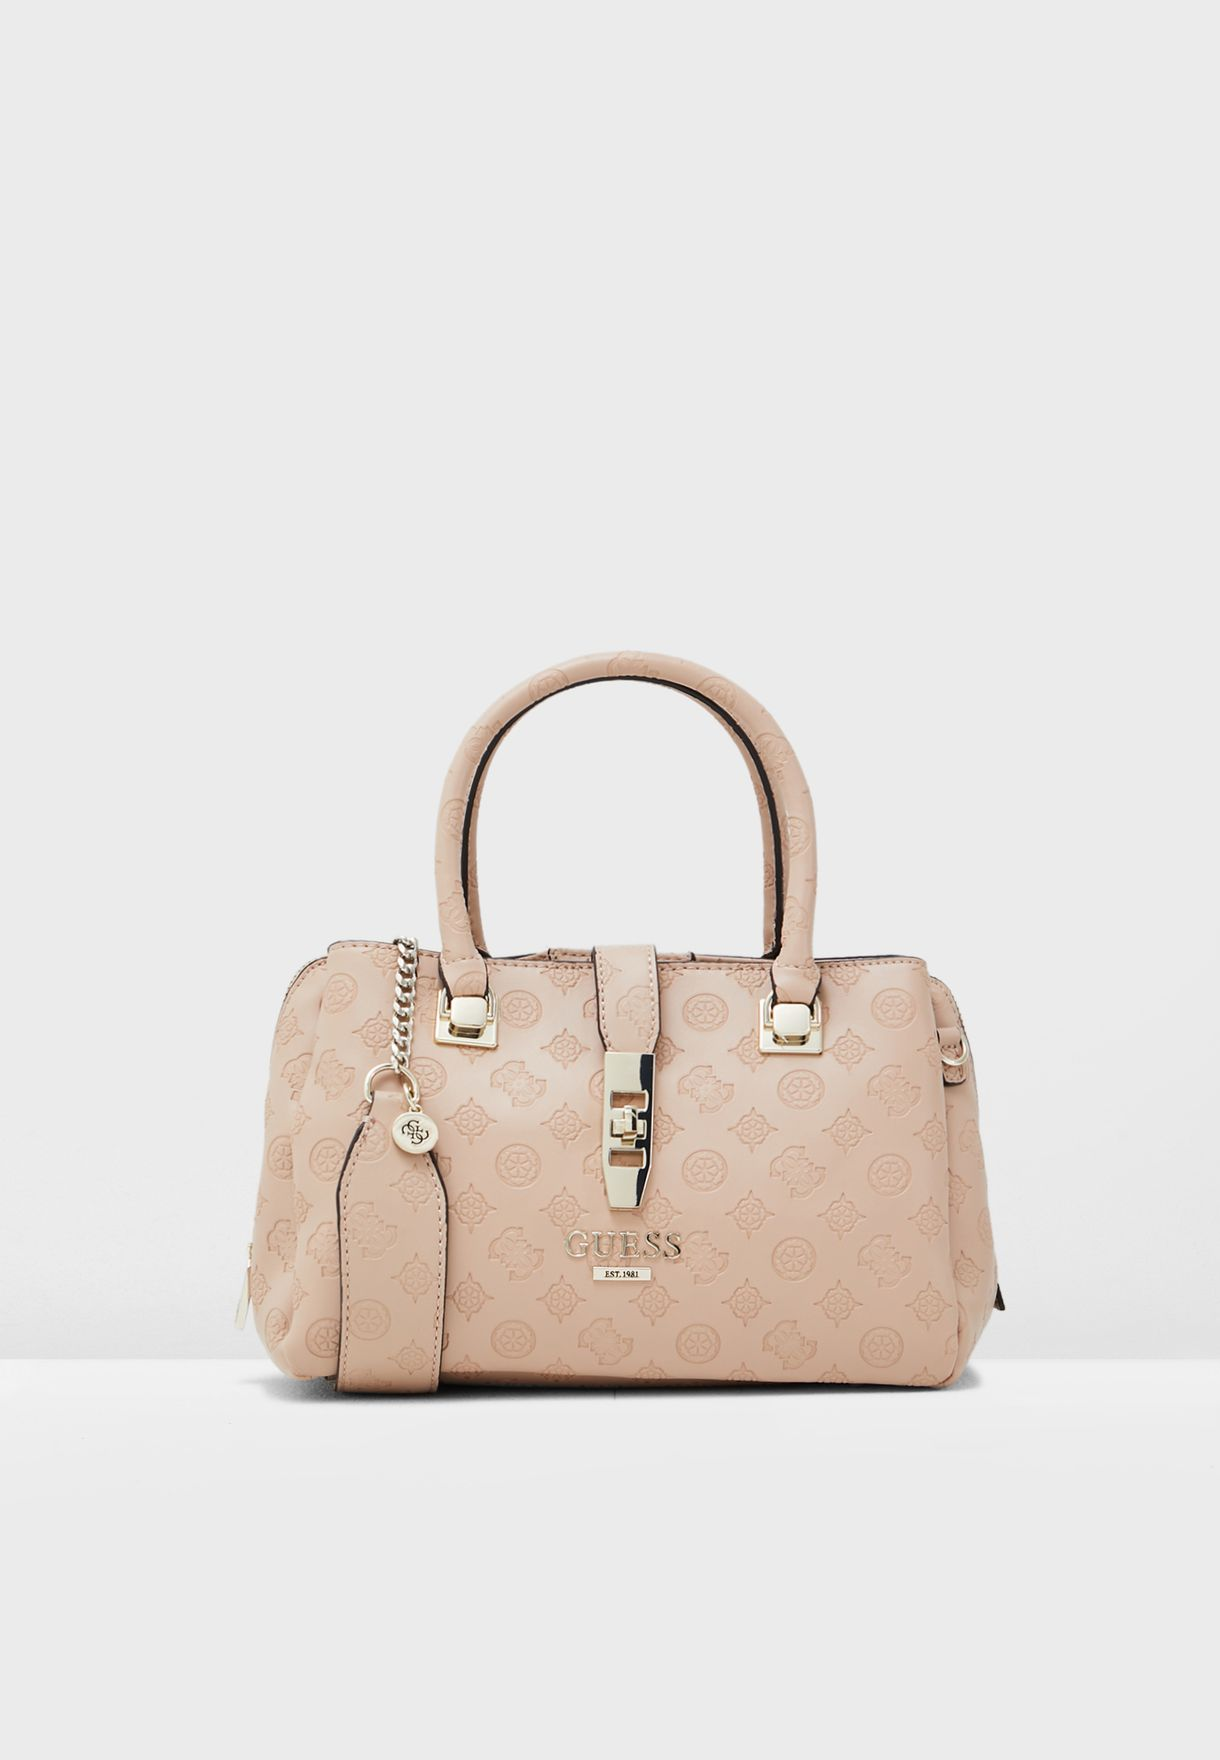 7a11ee4b9e0 Shop Guess pink Peony Classic Satchel SG739806 for Women in UAE ...